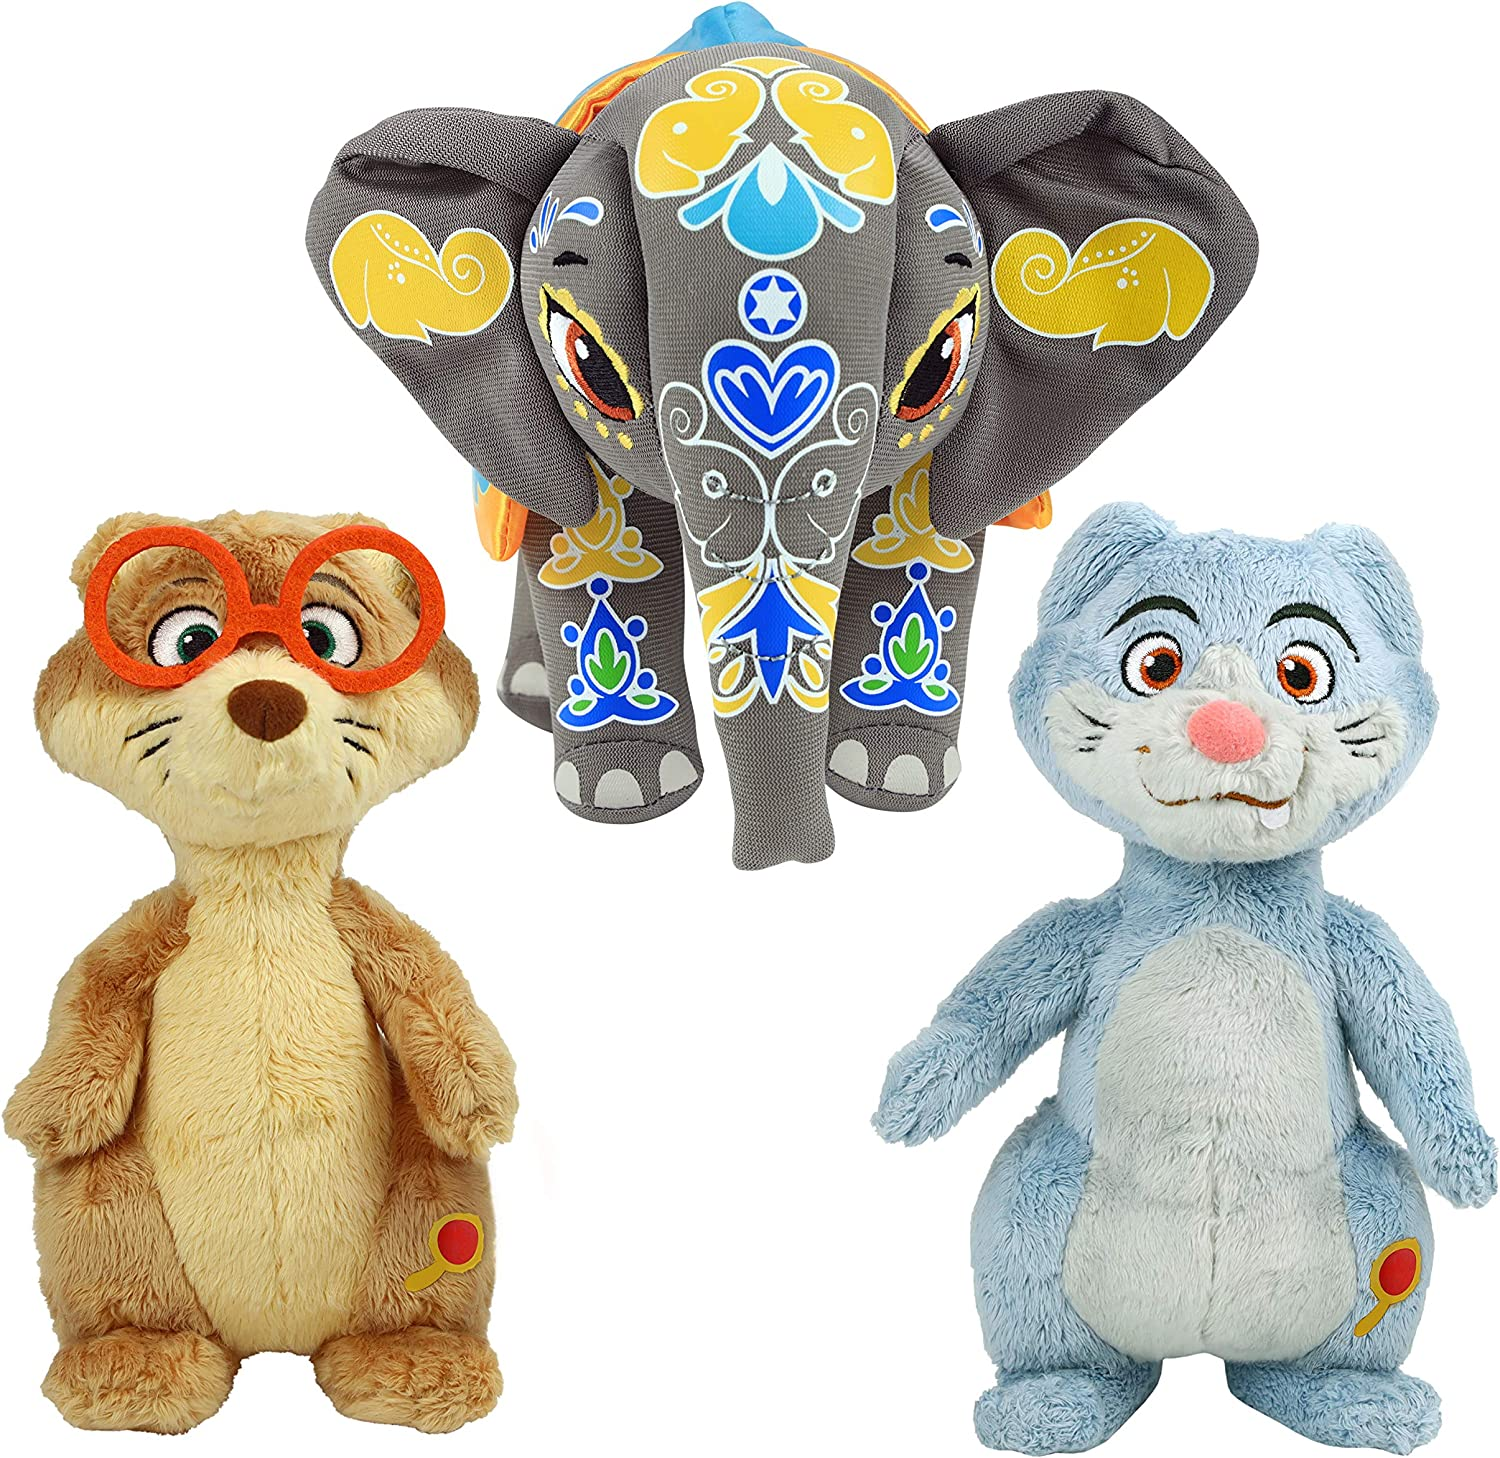 Royal Detective 7-Inch Small Plush Anoop Disney Junior Mira